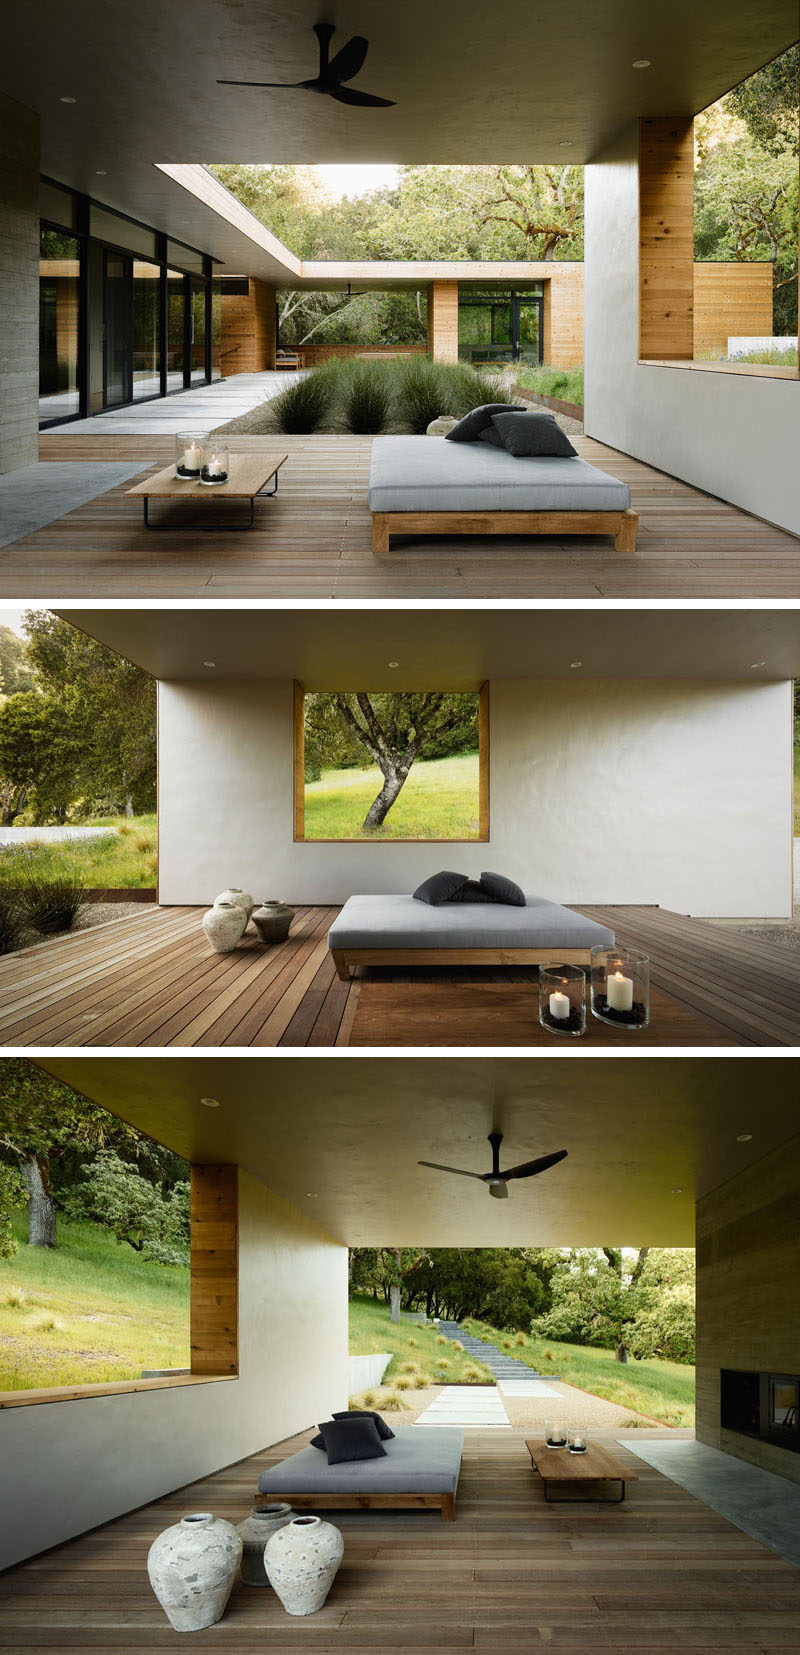 This home has a covered outdoor living room with a day bed and fireplace. A cut-out in the wall perfectly frames a single tree.